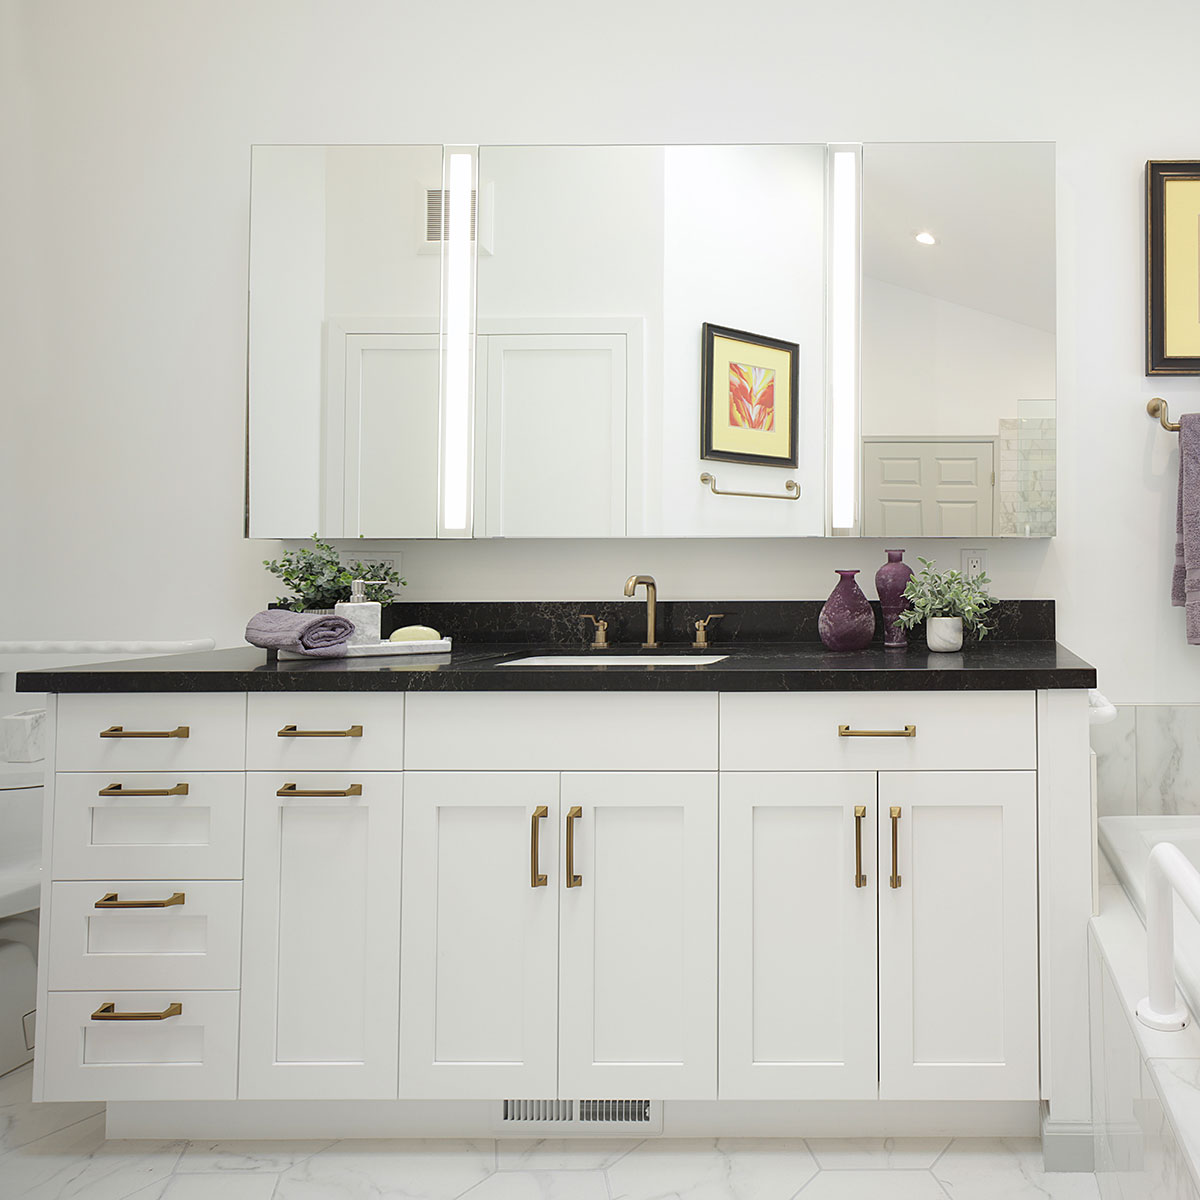 Upscale Bathroom Remodeling Trends East Bay California - Oakland - Black and White for Visually Impaired - Custom Kitchens by John Wilkins